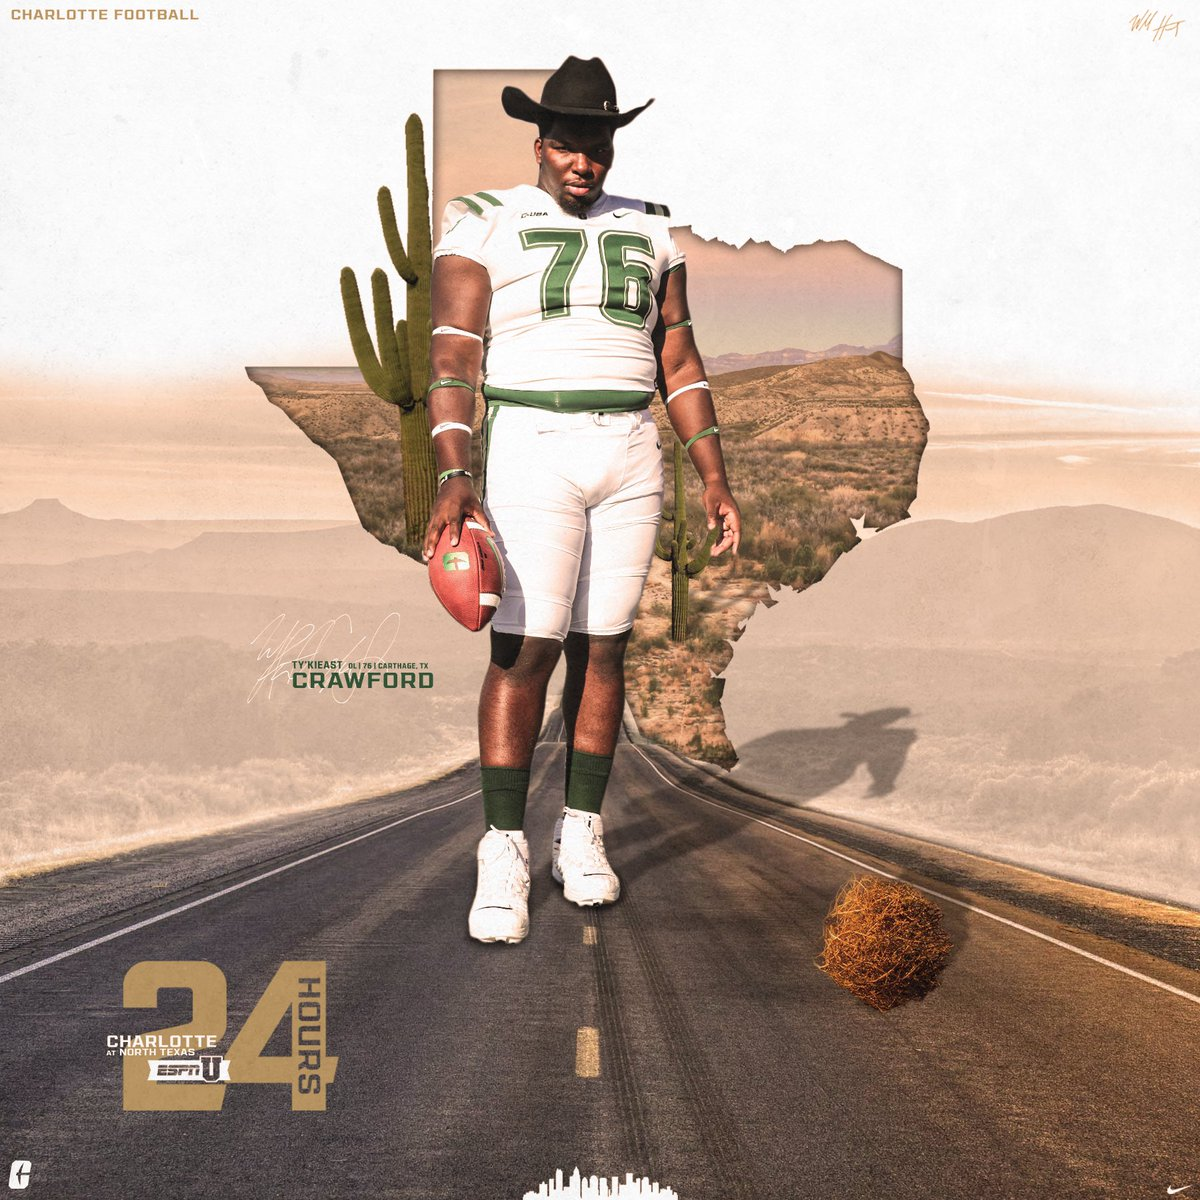 𝗕𝗜𝗚 𝗧𝗘𝗫 The team's lone Texas star, Ty'Kieast Crawford, returns home ⭐️ The Niners and North Texas meet Saturday at 8 p.m. ET. ESPNU and @730TheGame 🤙 #PEEP • #GOLDstandard